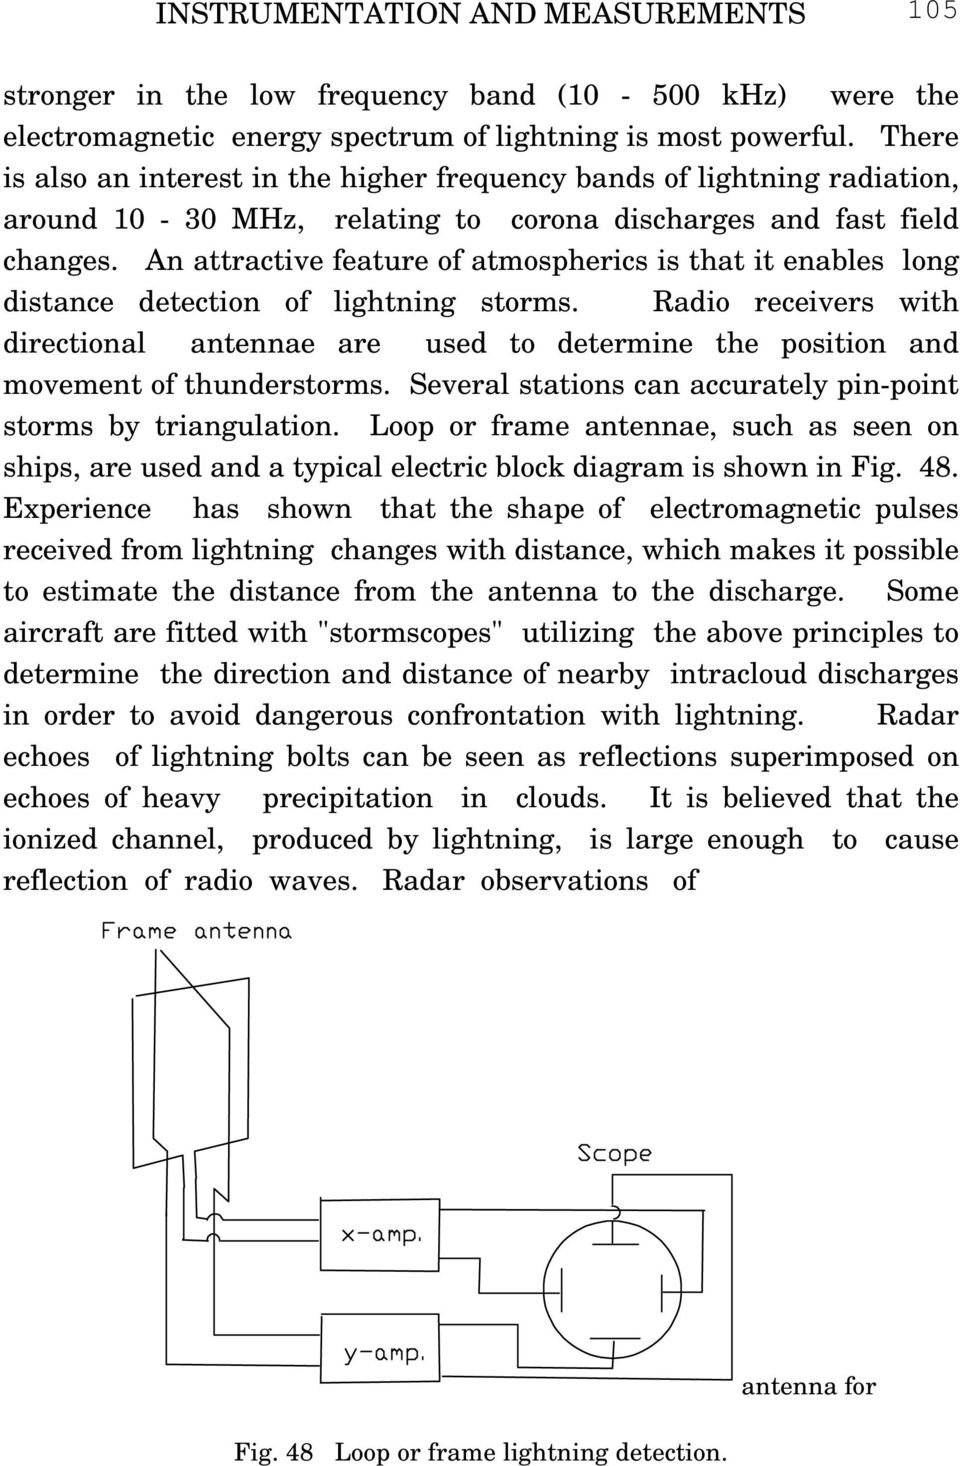 An attractive feature of atmospherics is that it enables long distance detection of lightning storms.